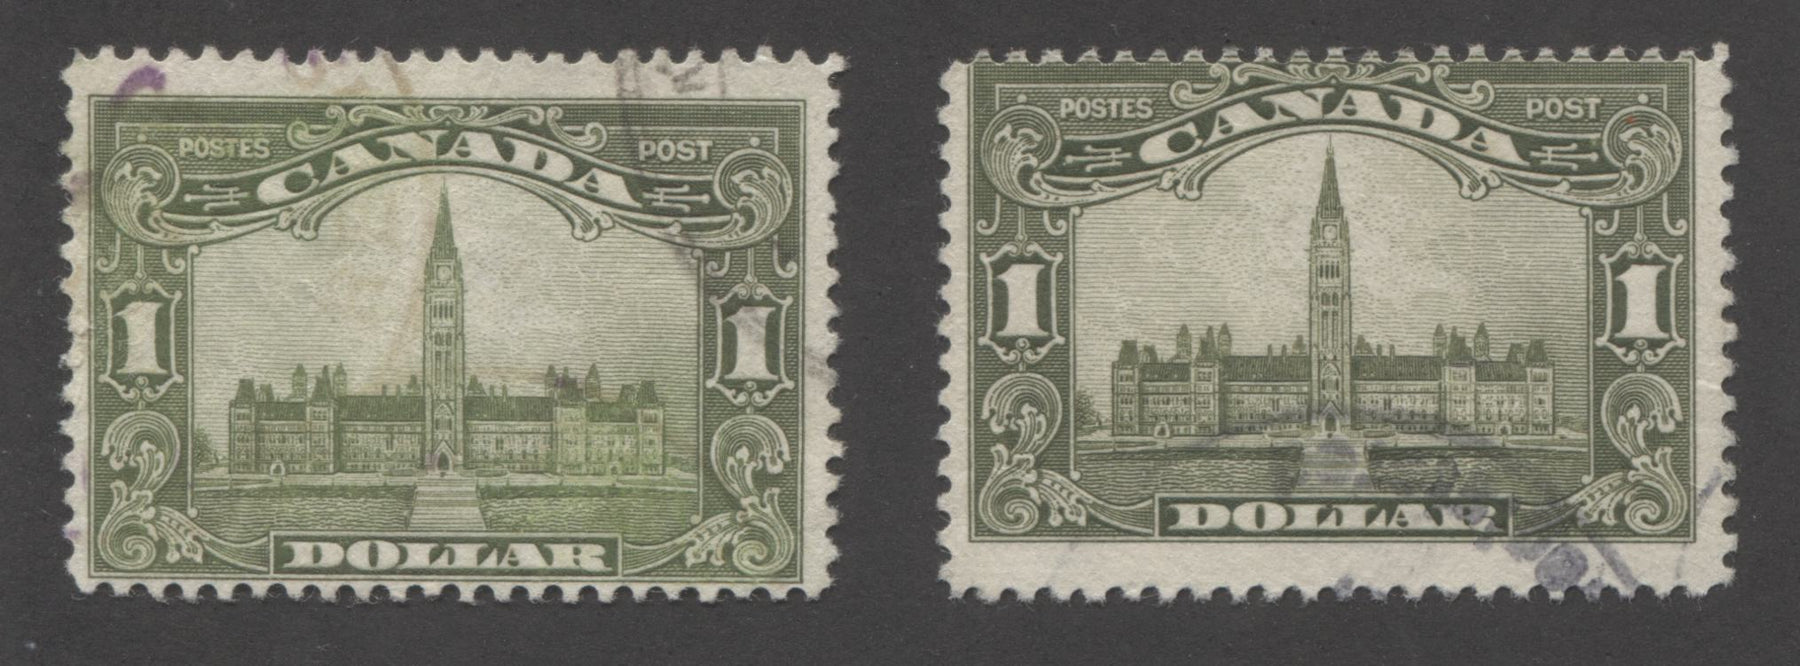 Canada #159 $1 Olive Green and Sage Green, King George V 1928-1929 Scroll Issue Fine and VG Used Examples of Two Shades Brixton Chrome